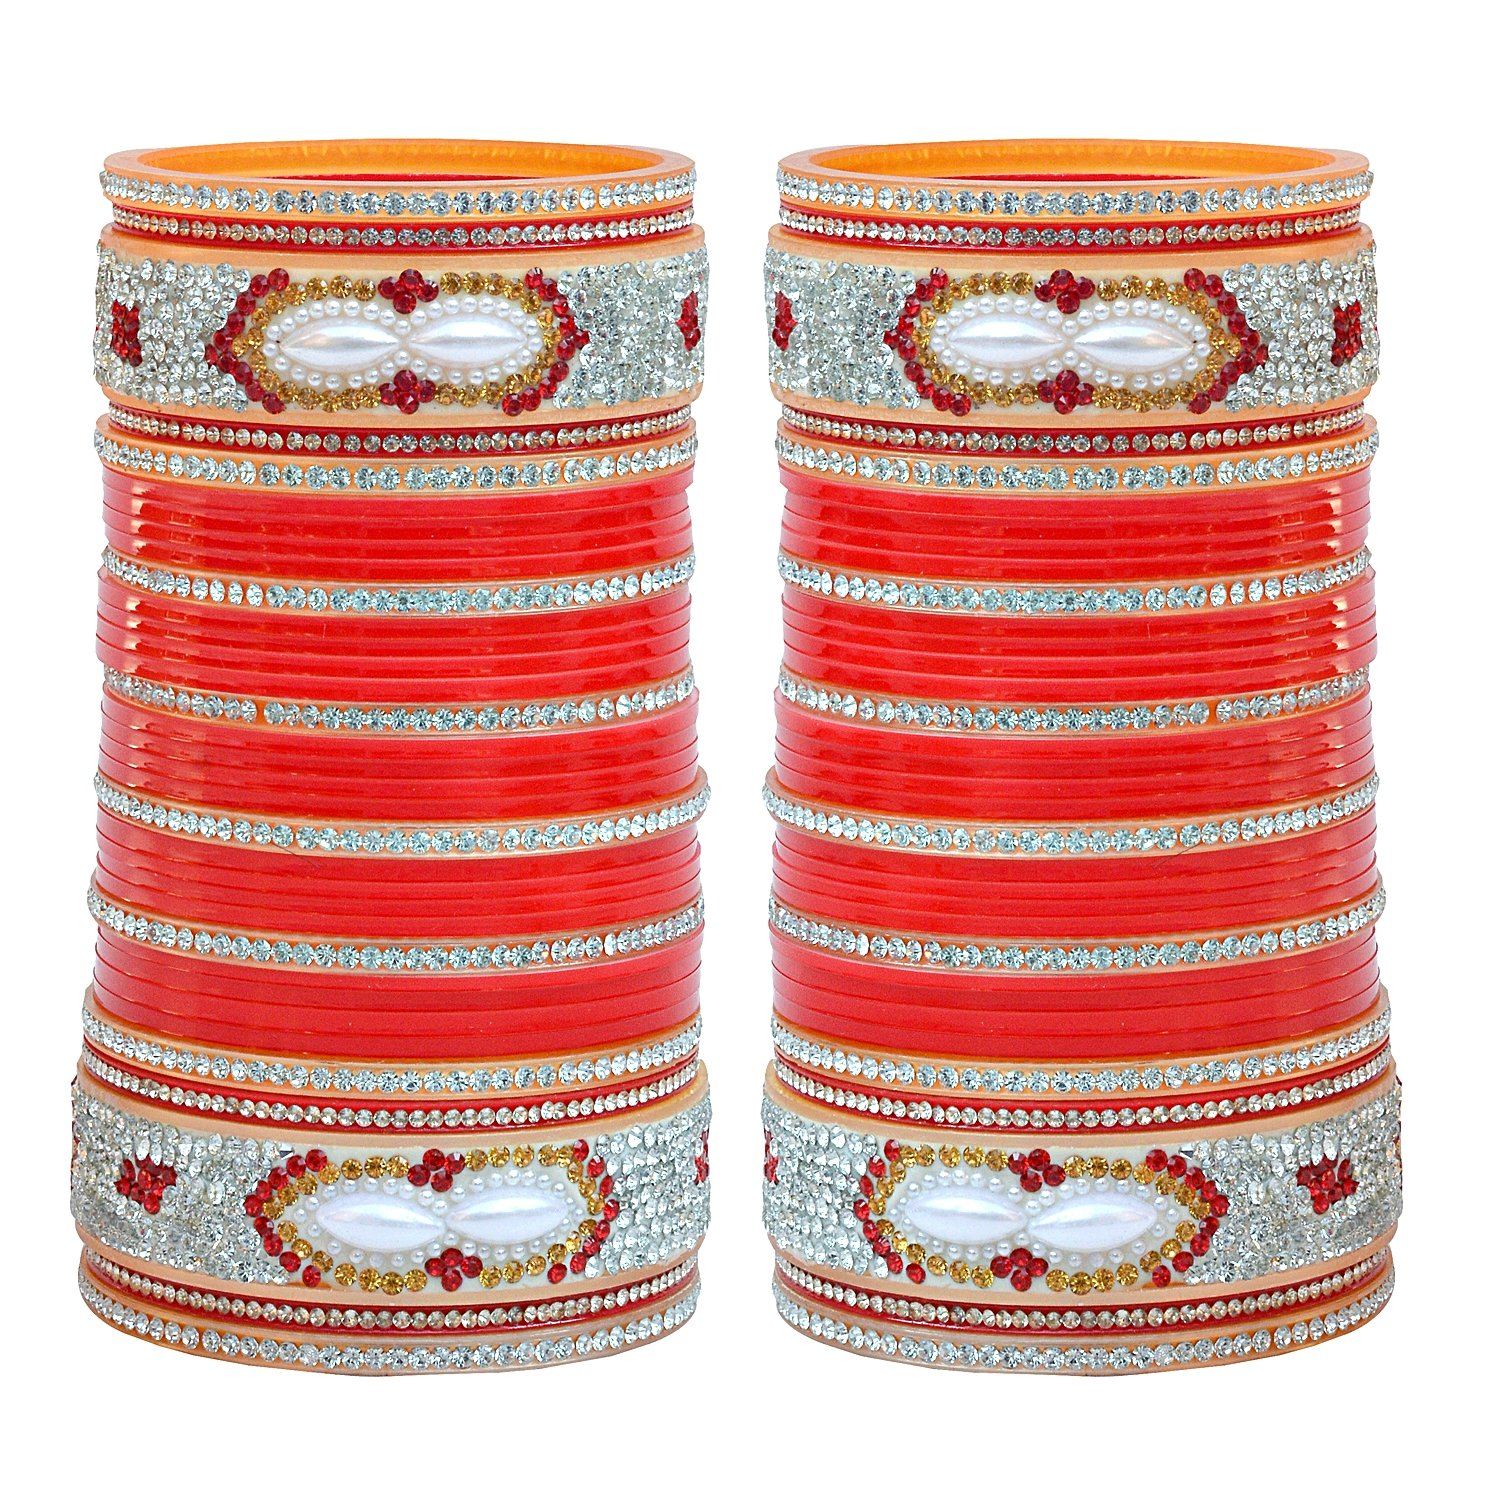 manihaar arrivals acrylic red latest earrings wedding best bangles jewellery bridal bracelets for traditional chura suhag punjabi copy necklaces fashion design